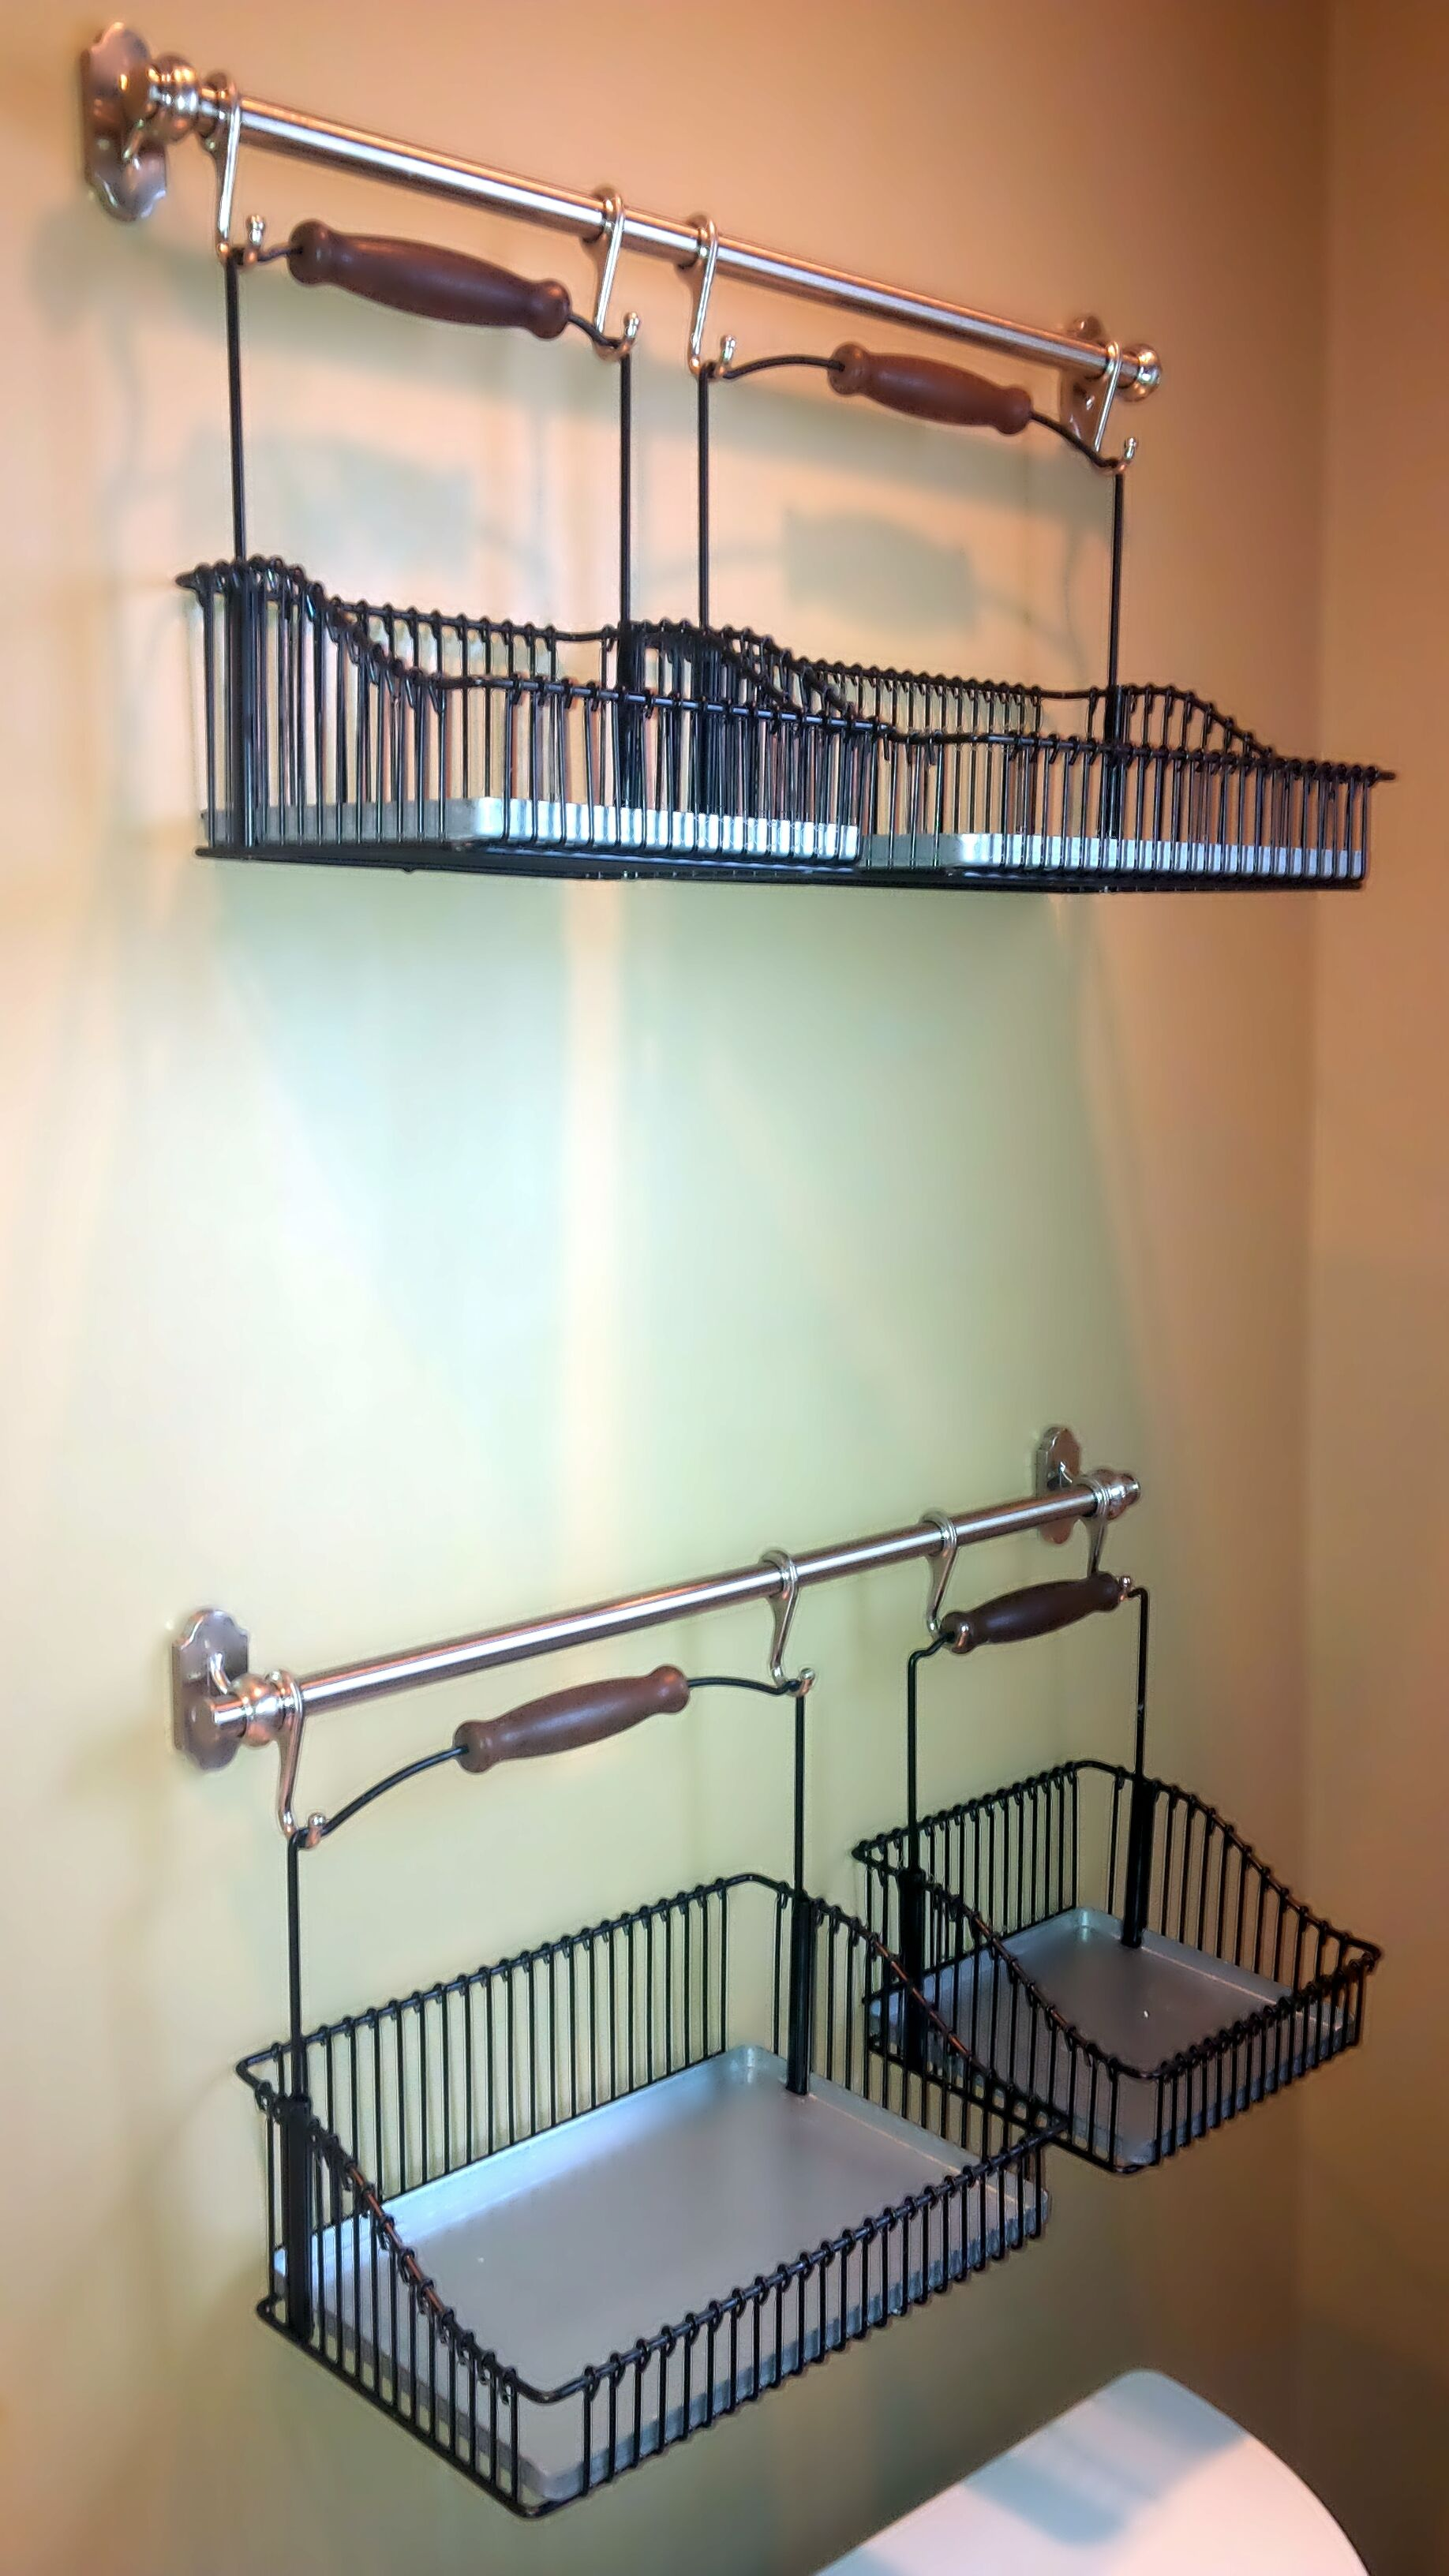 Ikea Hack In The Bathroom New Shelving System Home